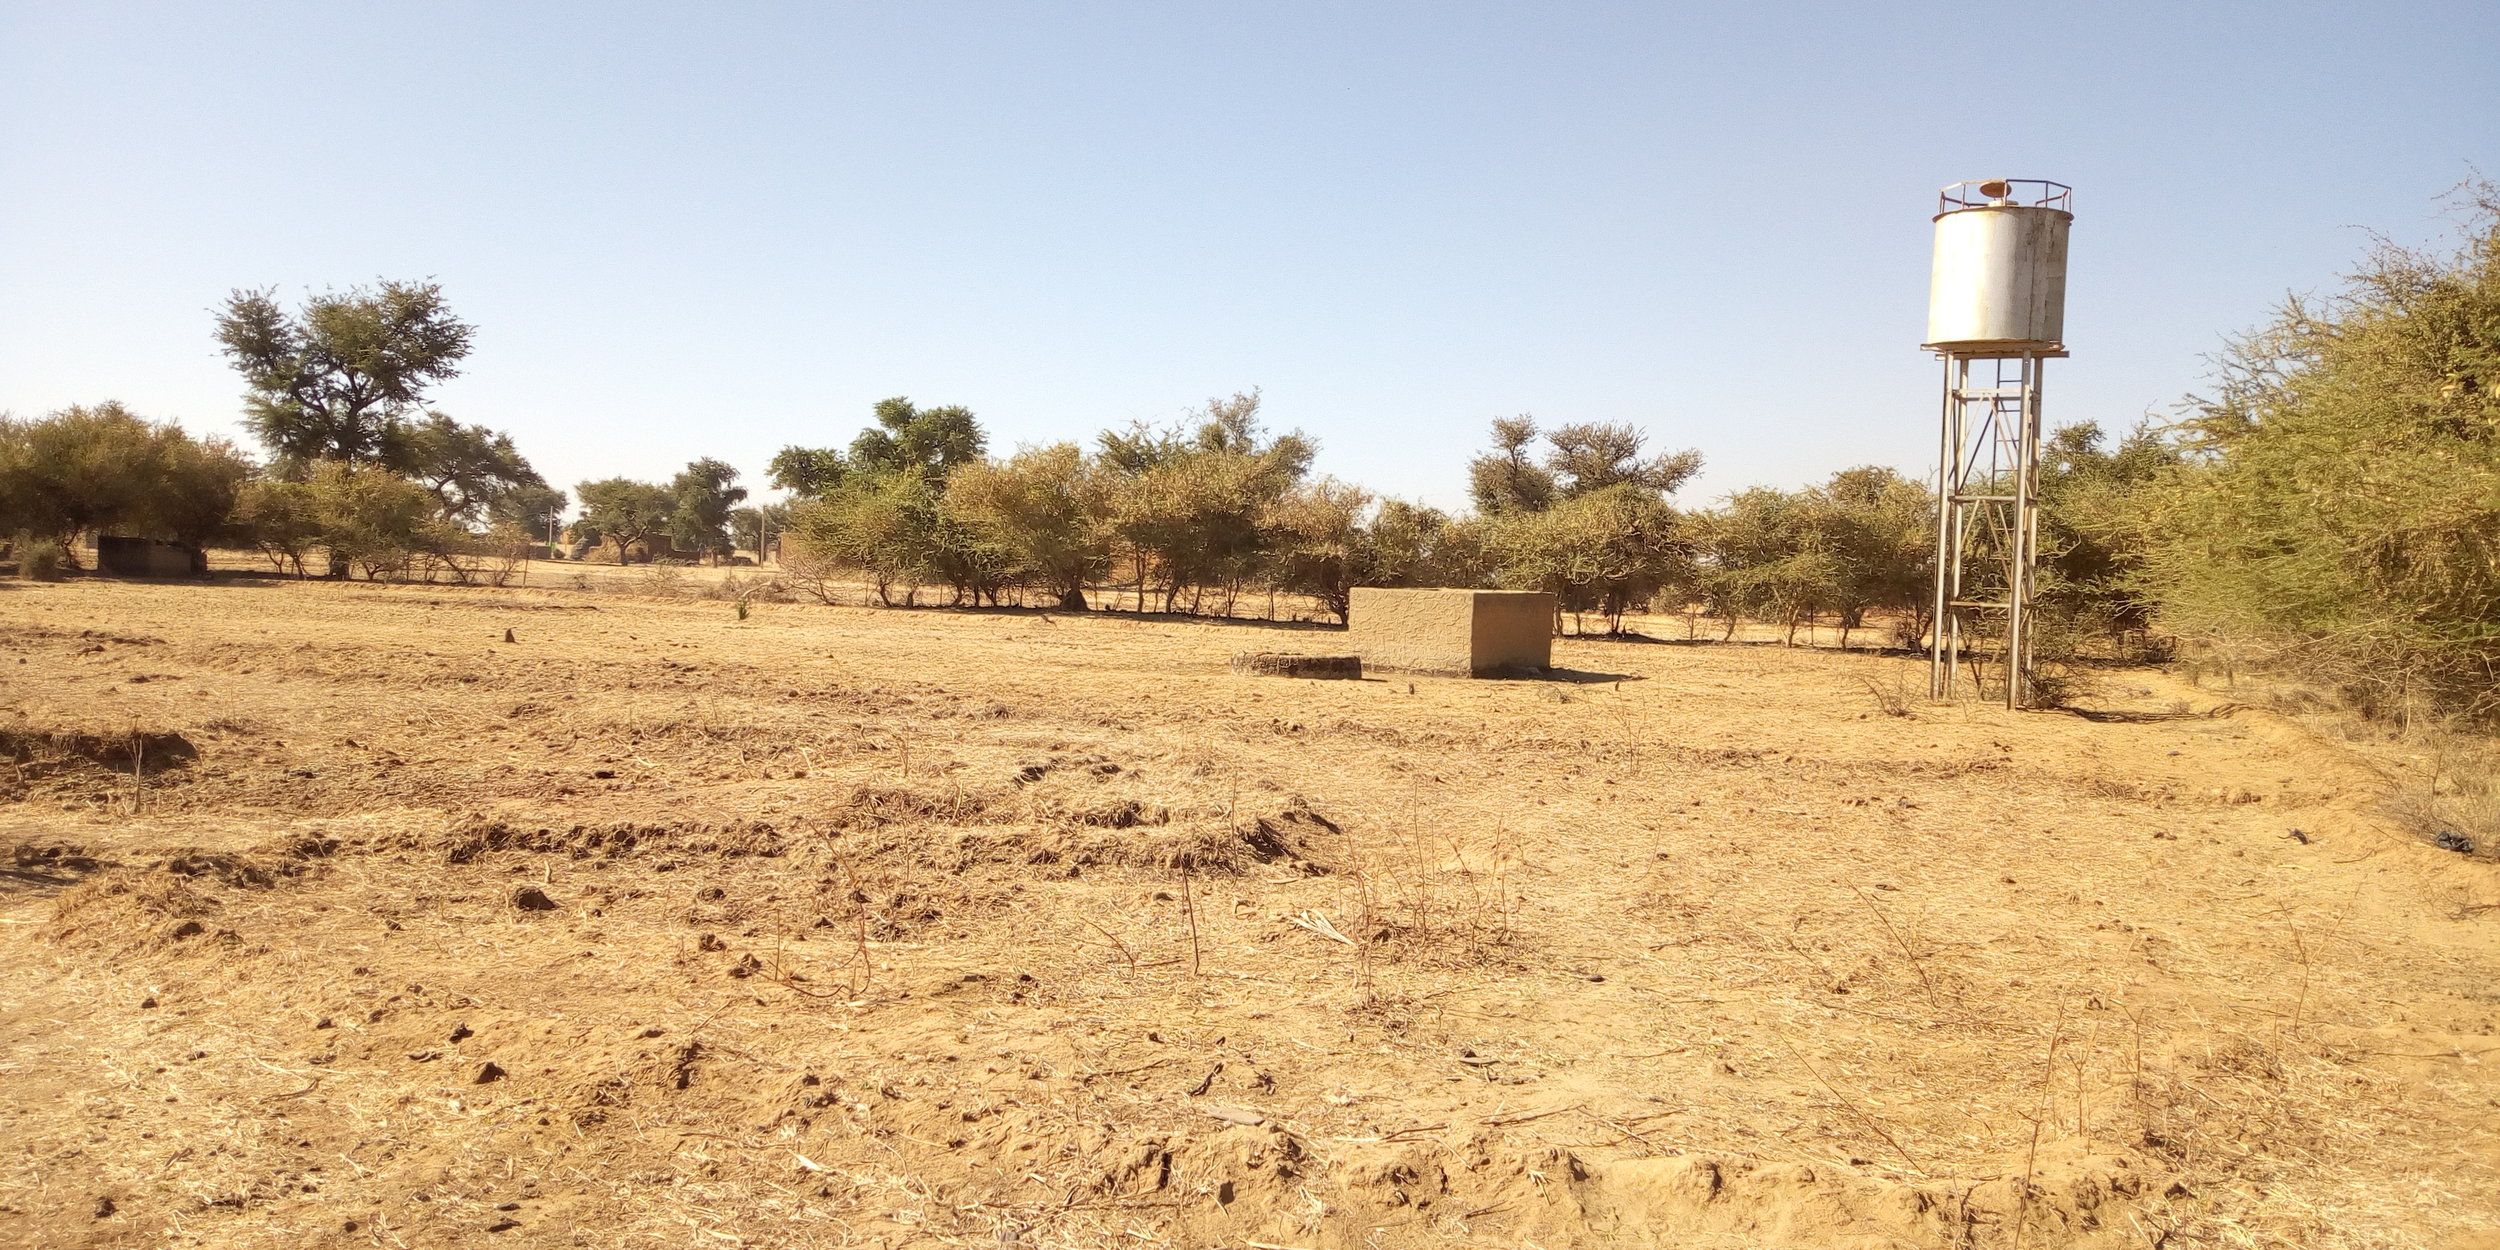 The park site lacked structure and many resources before the intervention. Credit: UN-Habitat